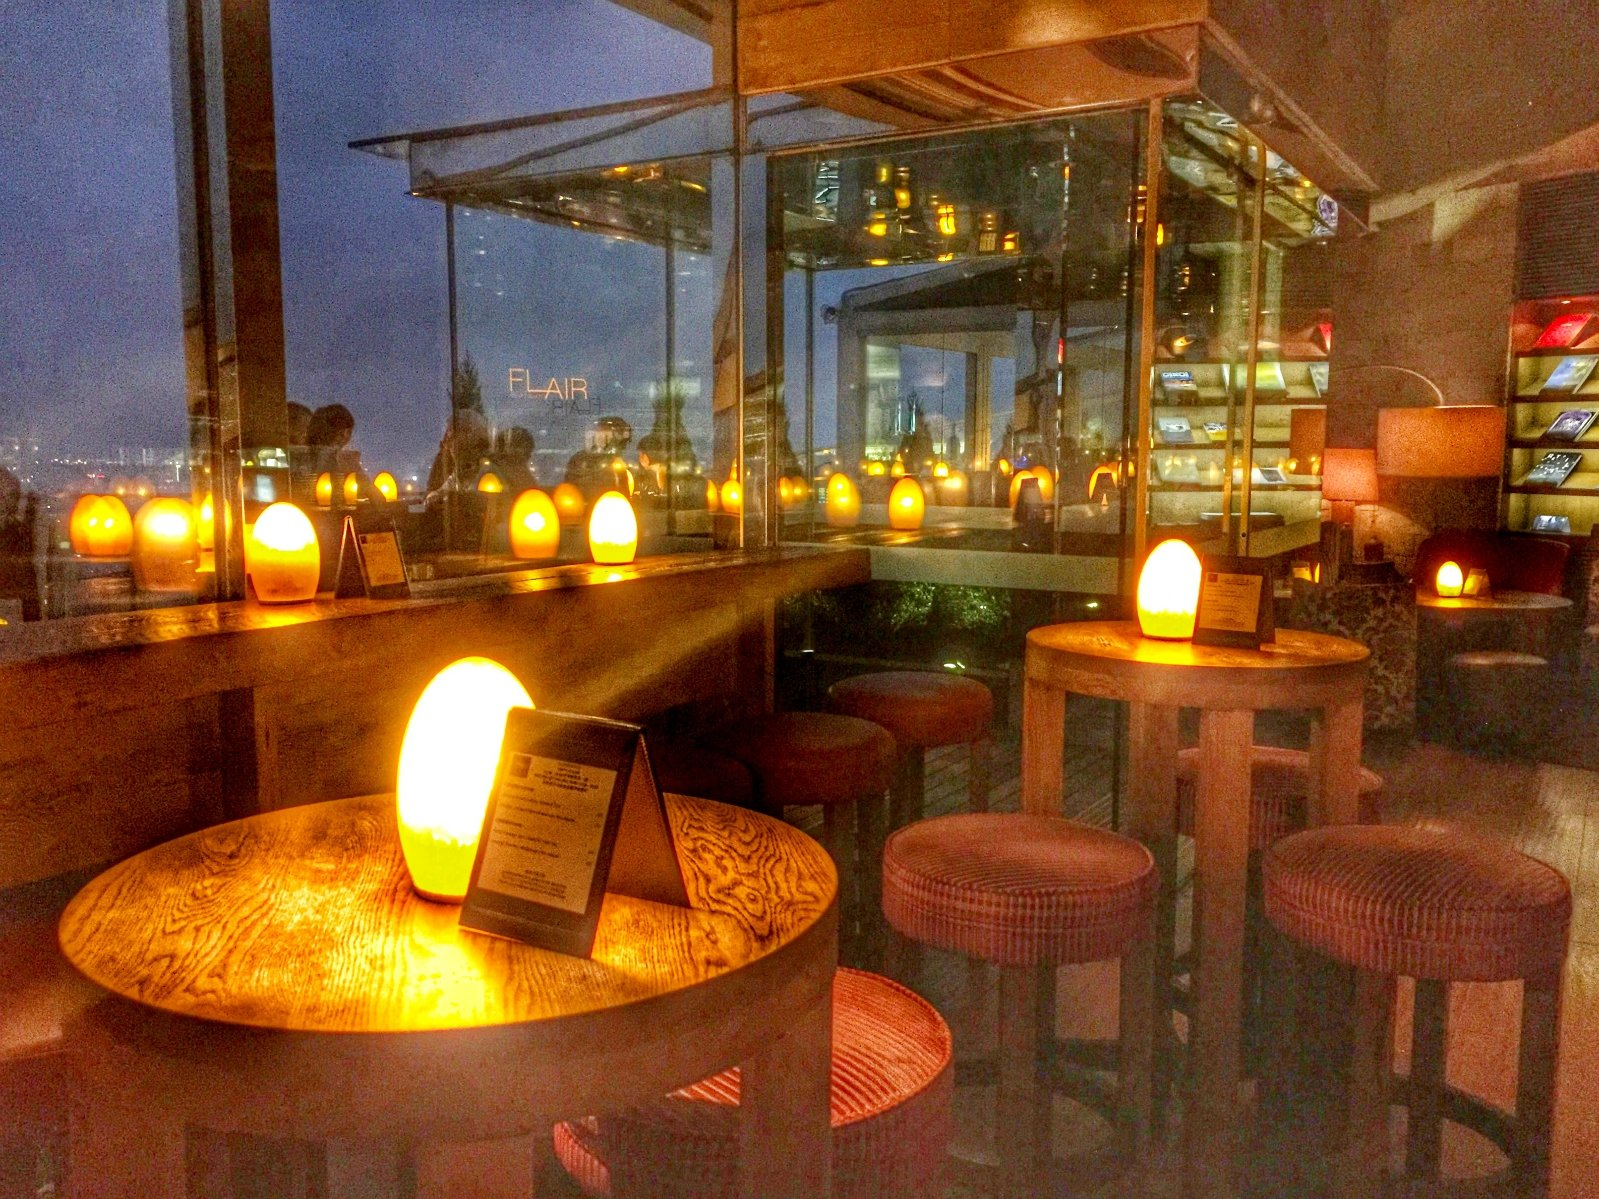 Flair rooftop顶层餐厅酒吧